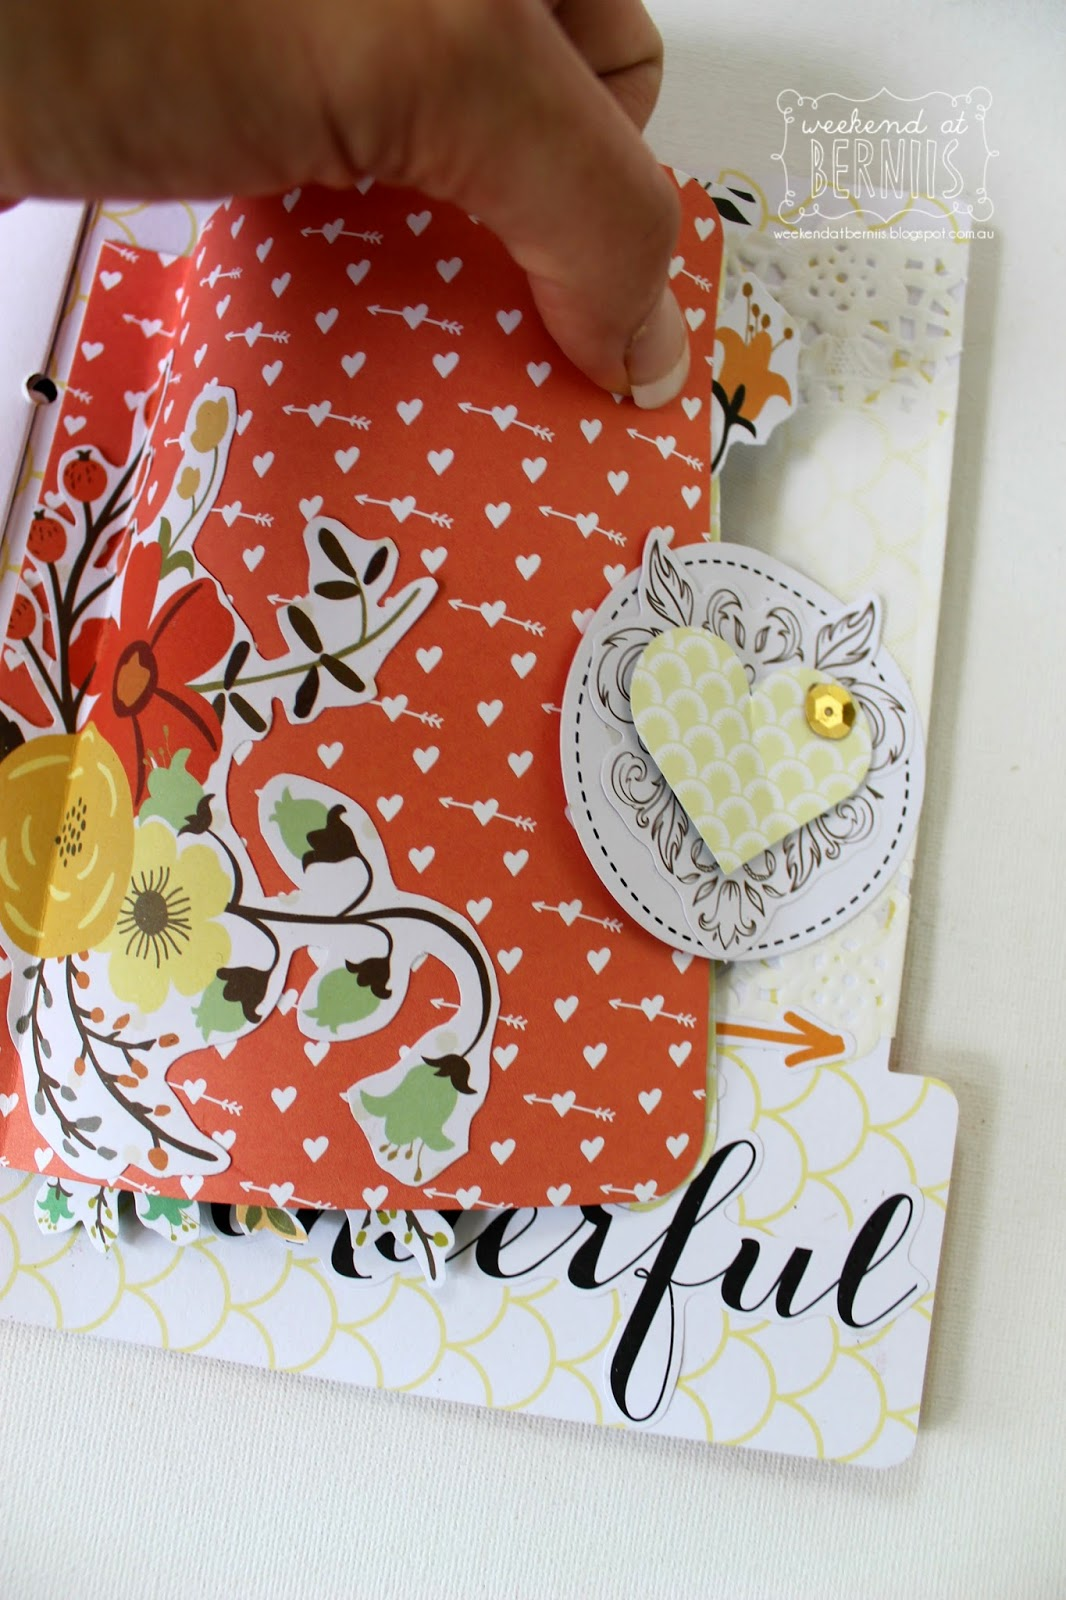 Our LIfe mini album by Bernii Miller using Teresa Collins Nine & Co collection.